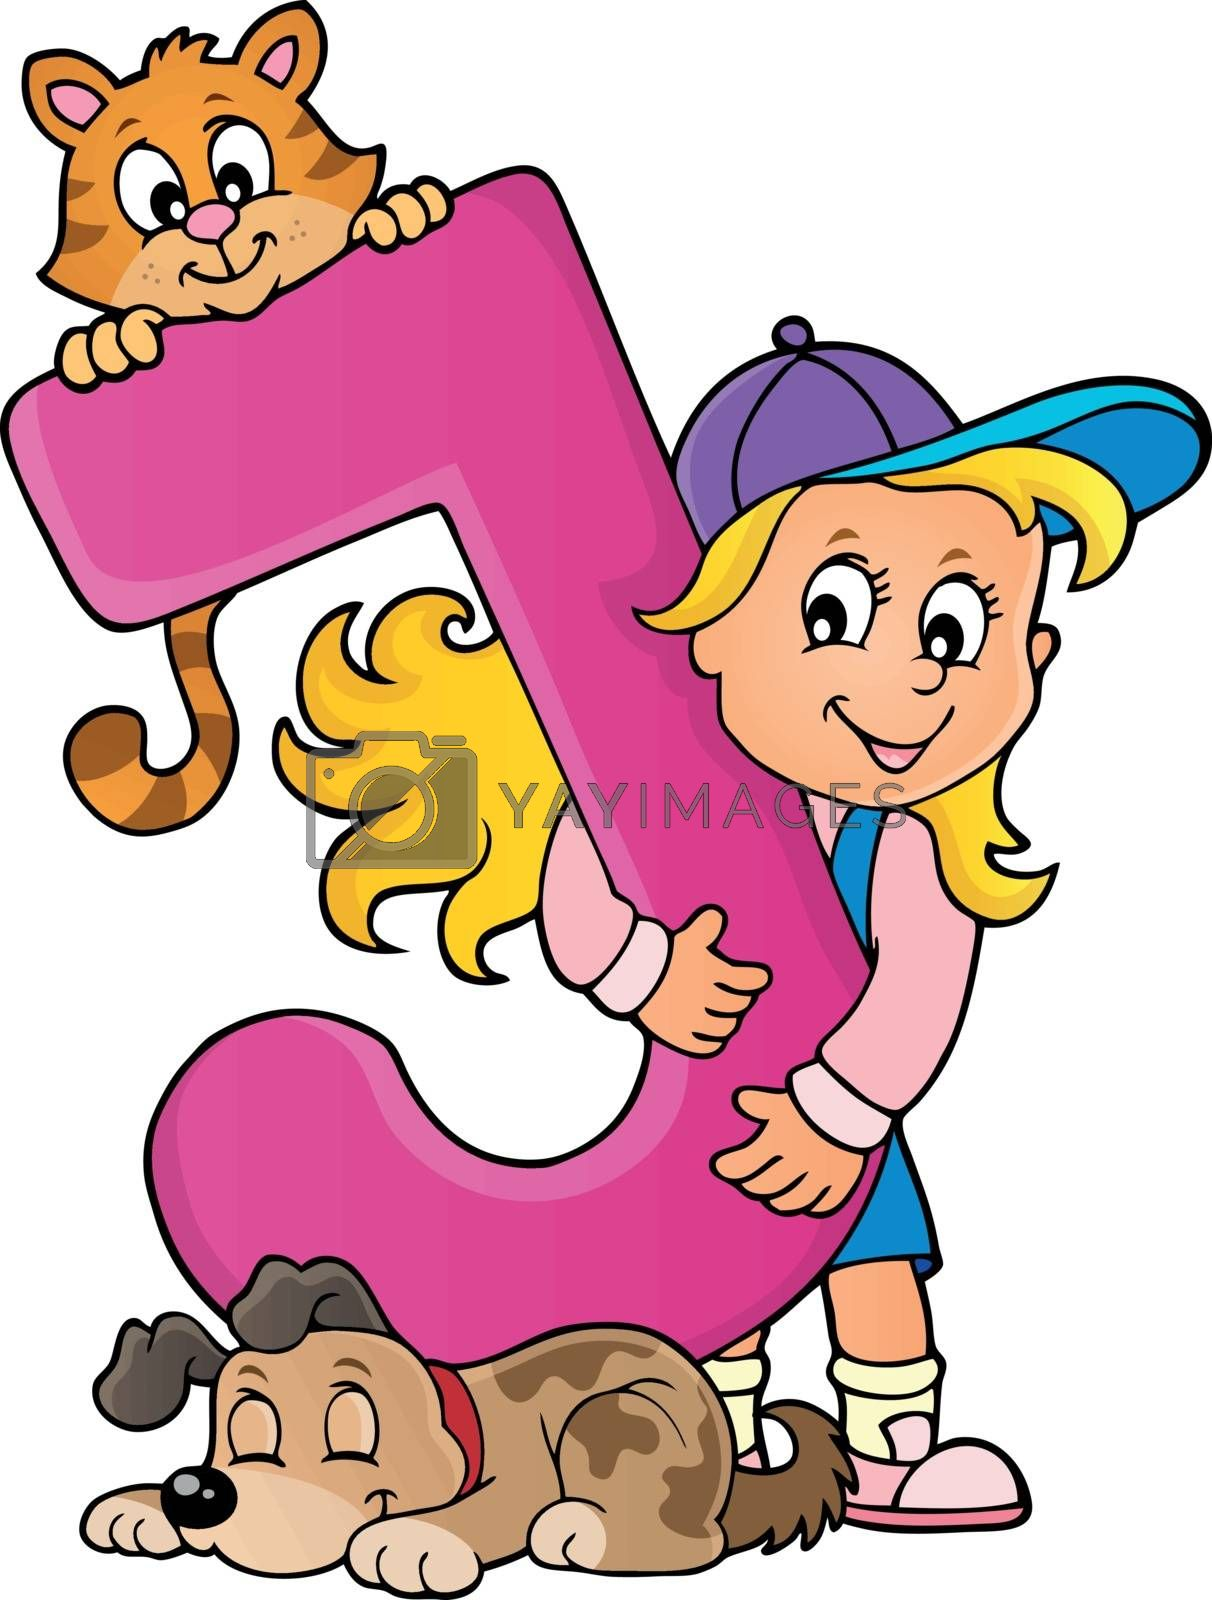 Girl and pets with letter J - eps10 vector illustration.